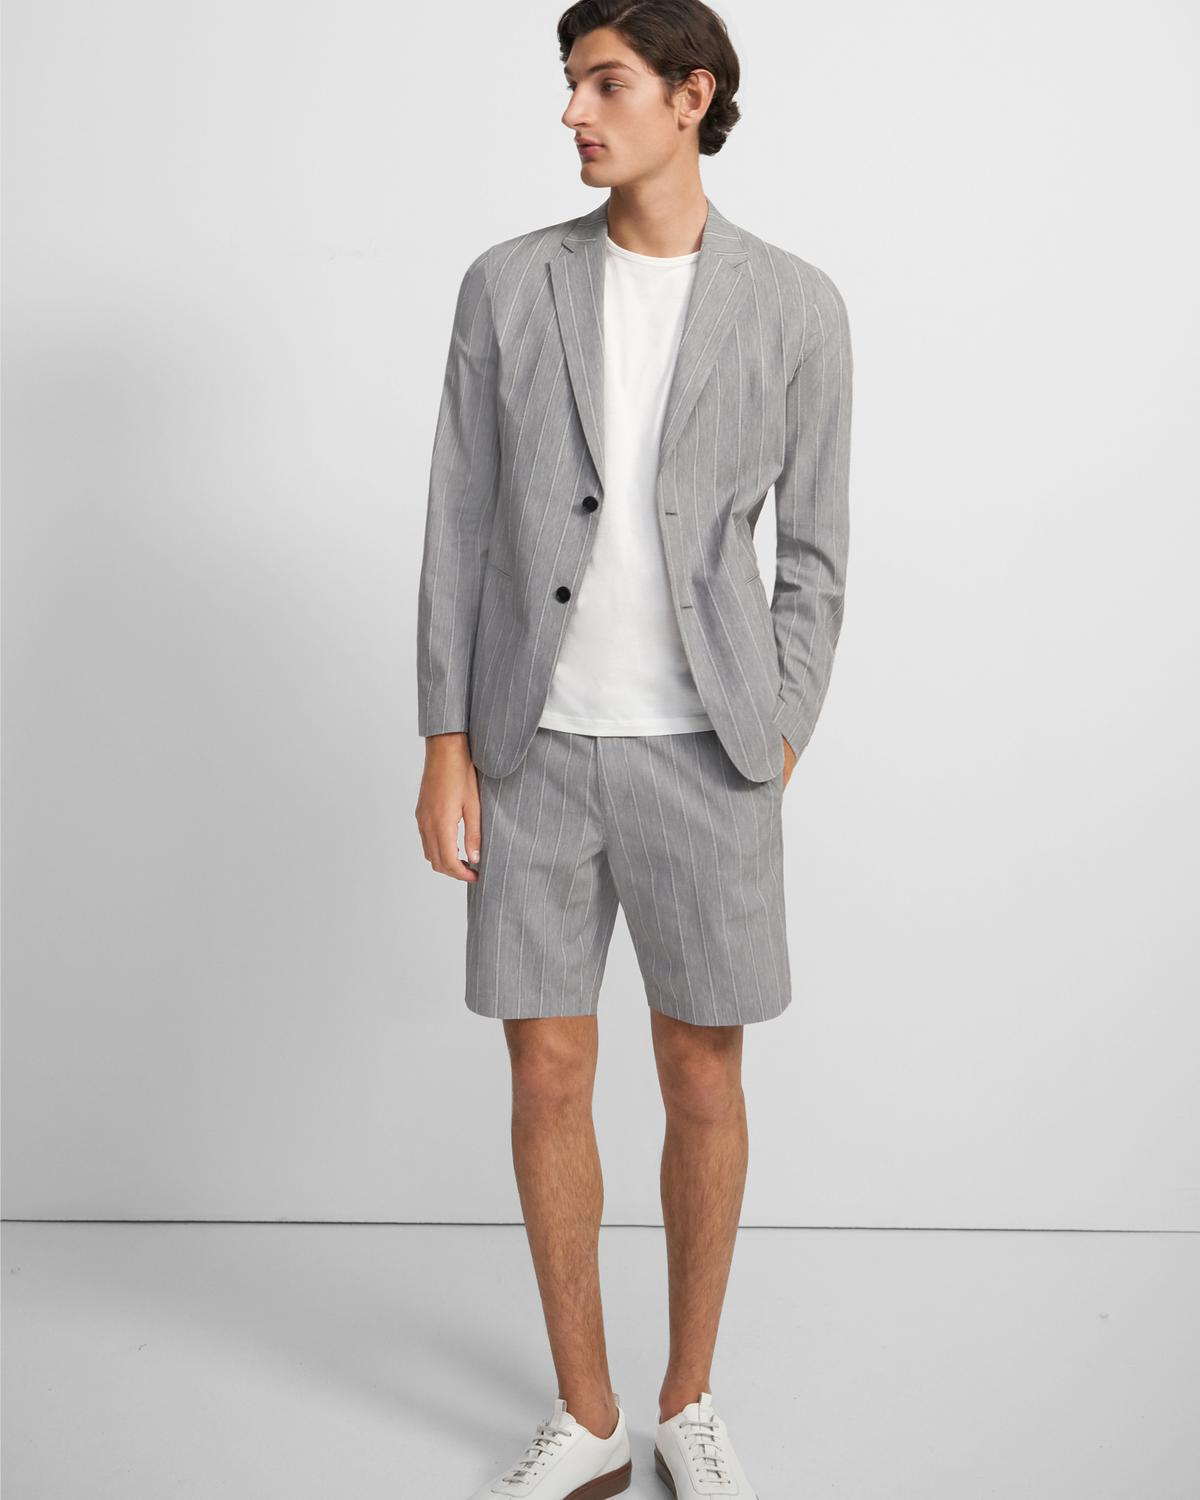 Clinton Blazer in Textured Cotton Blend